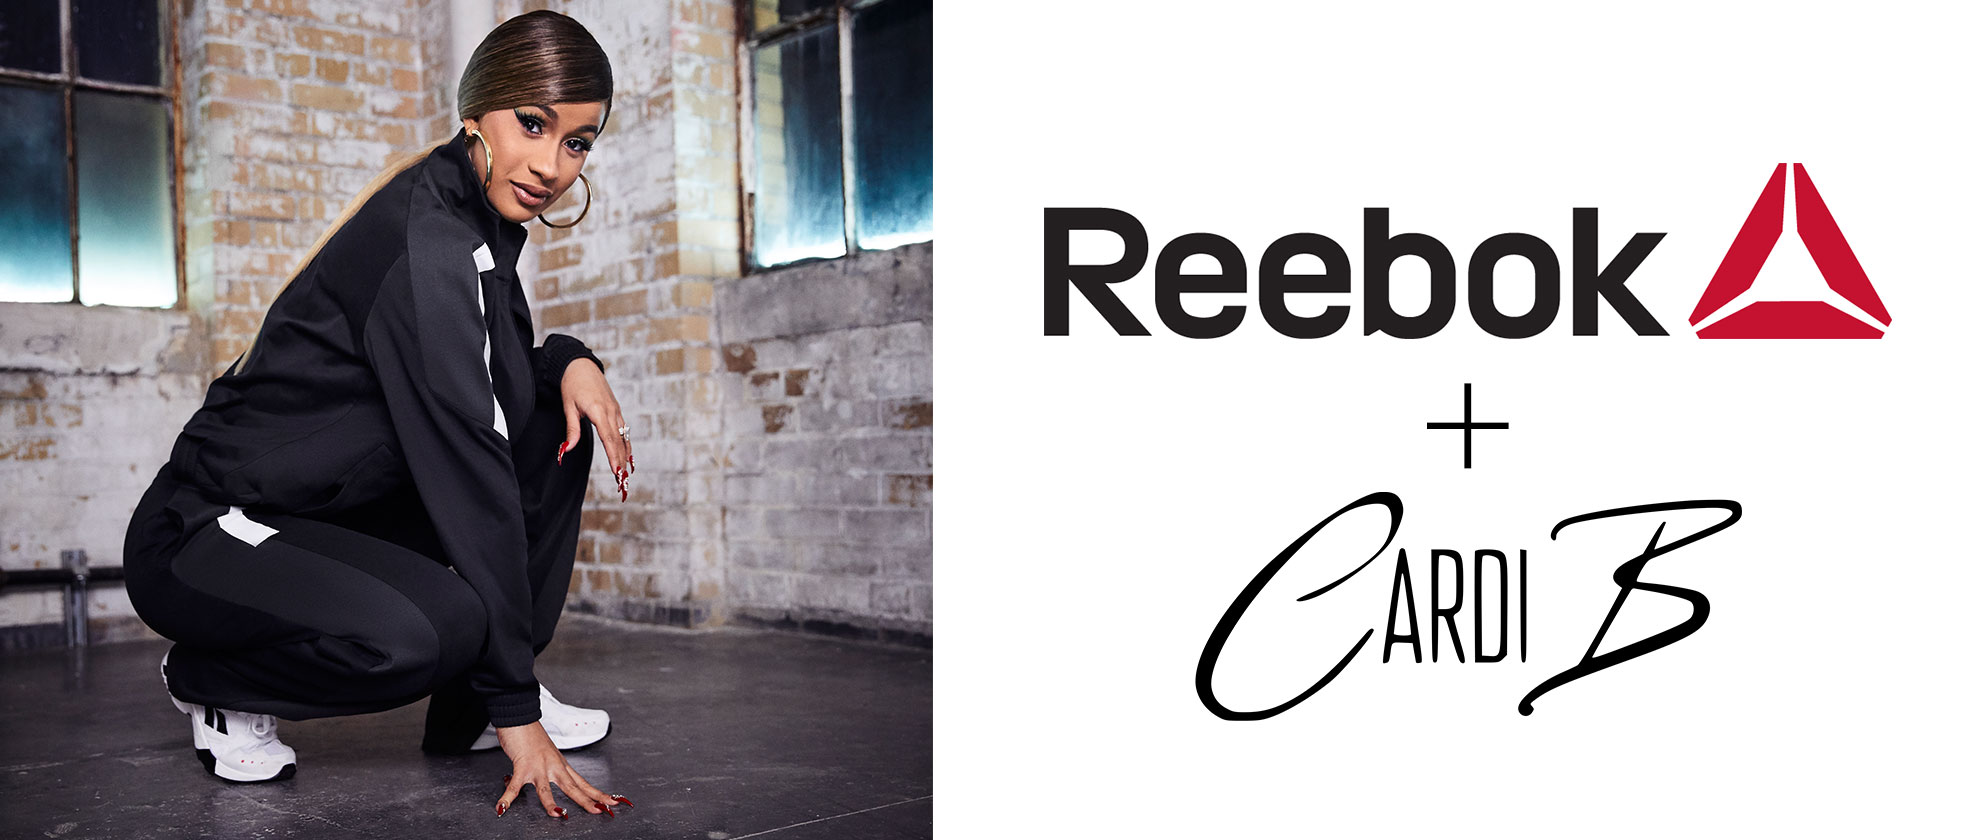 Cardi B is the new face of Reebok!